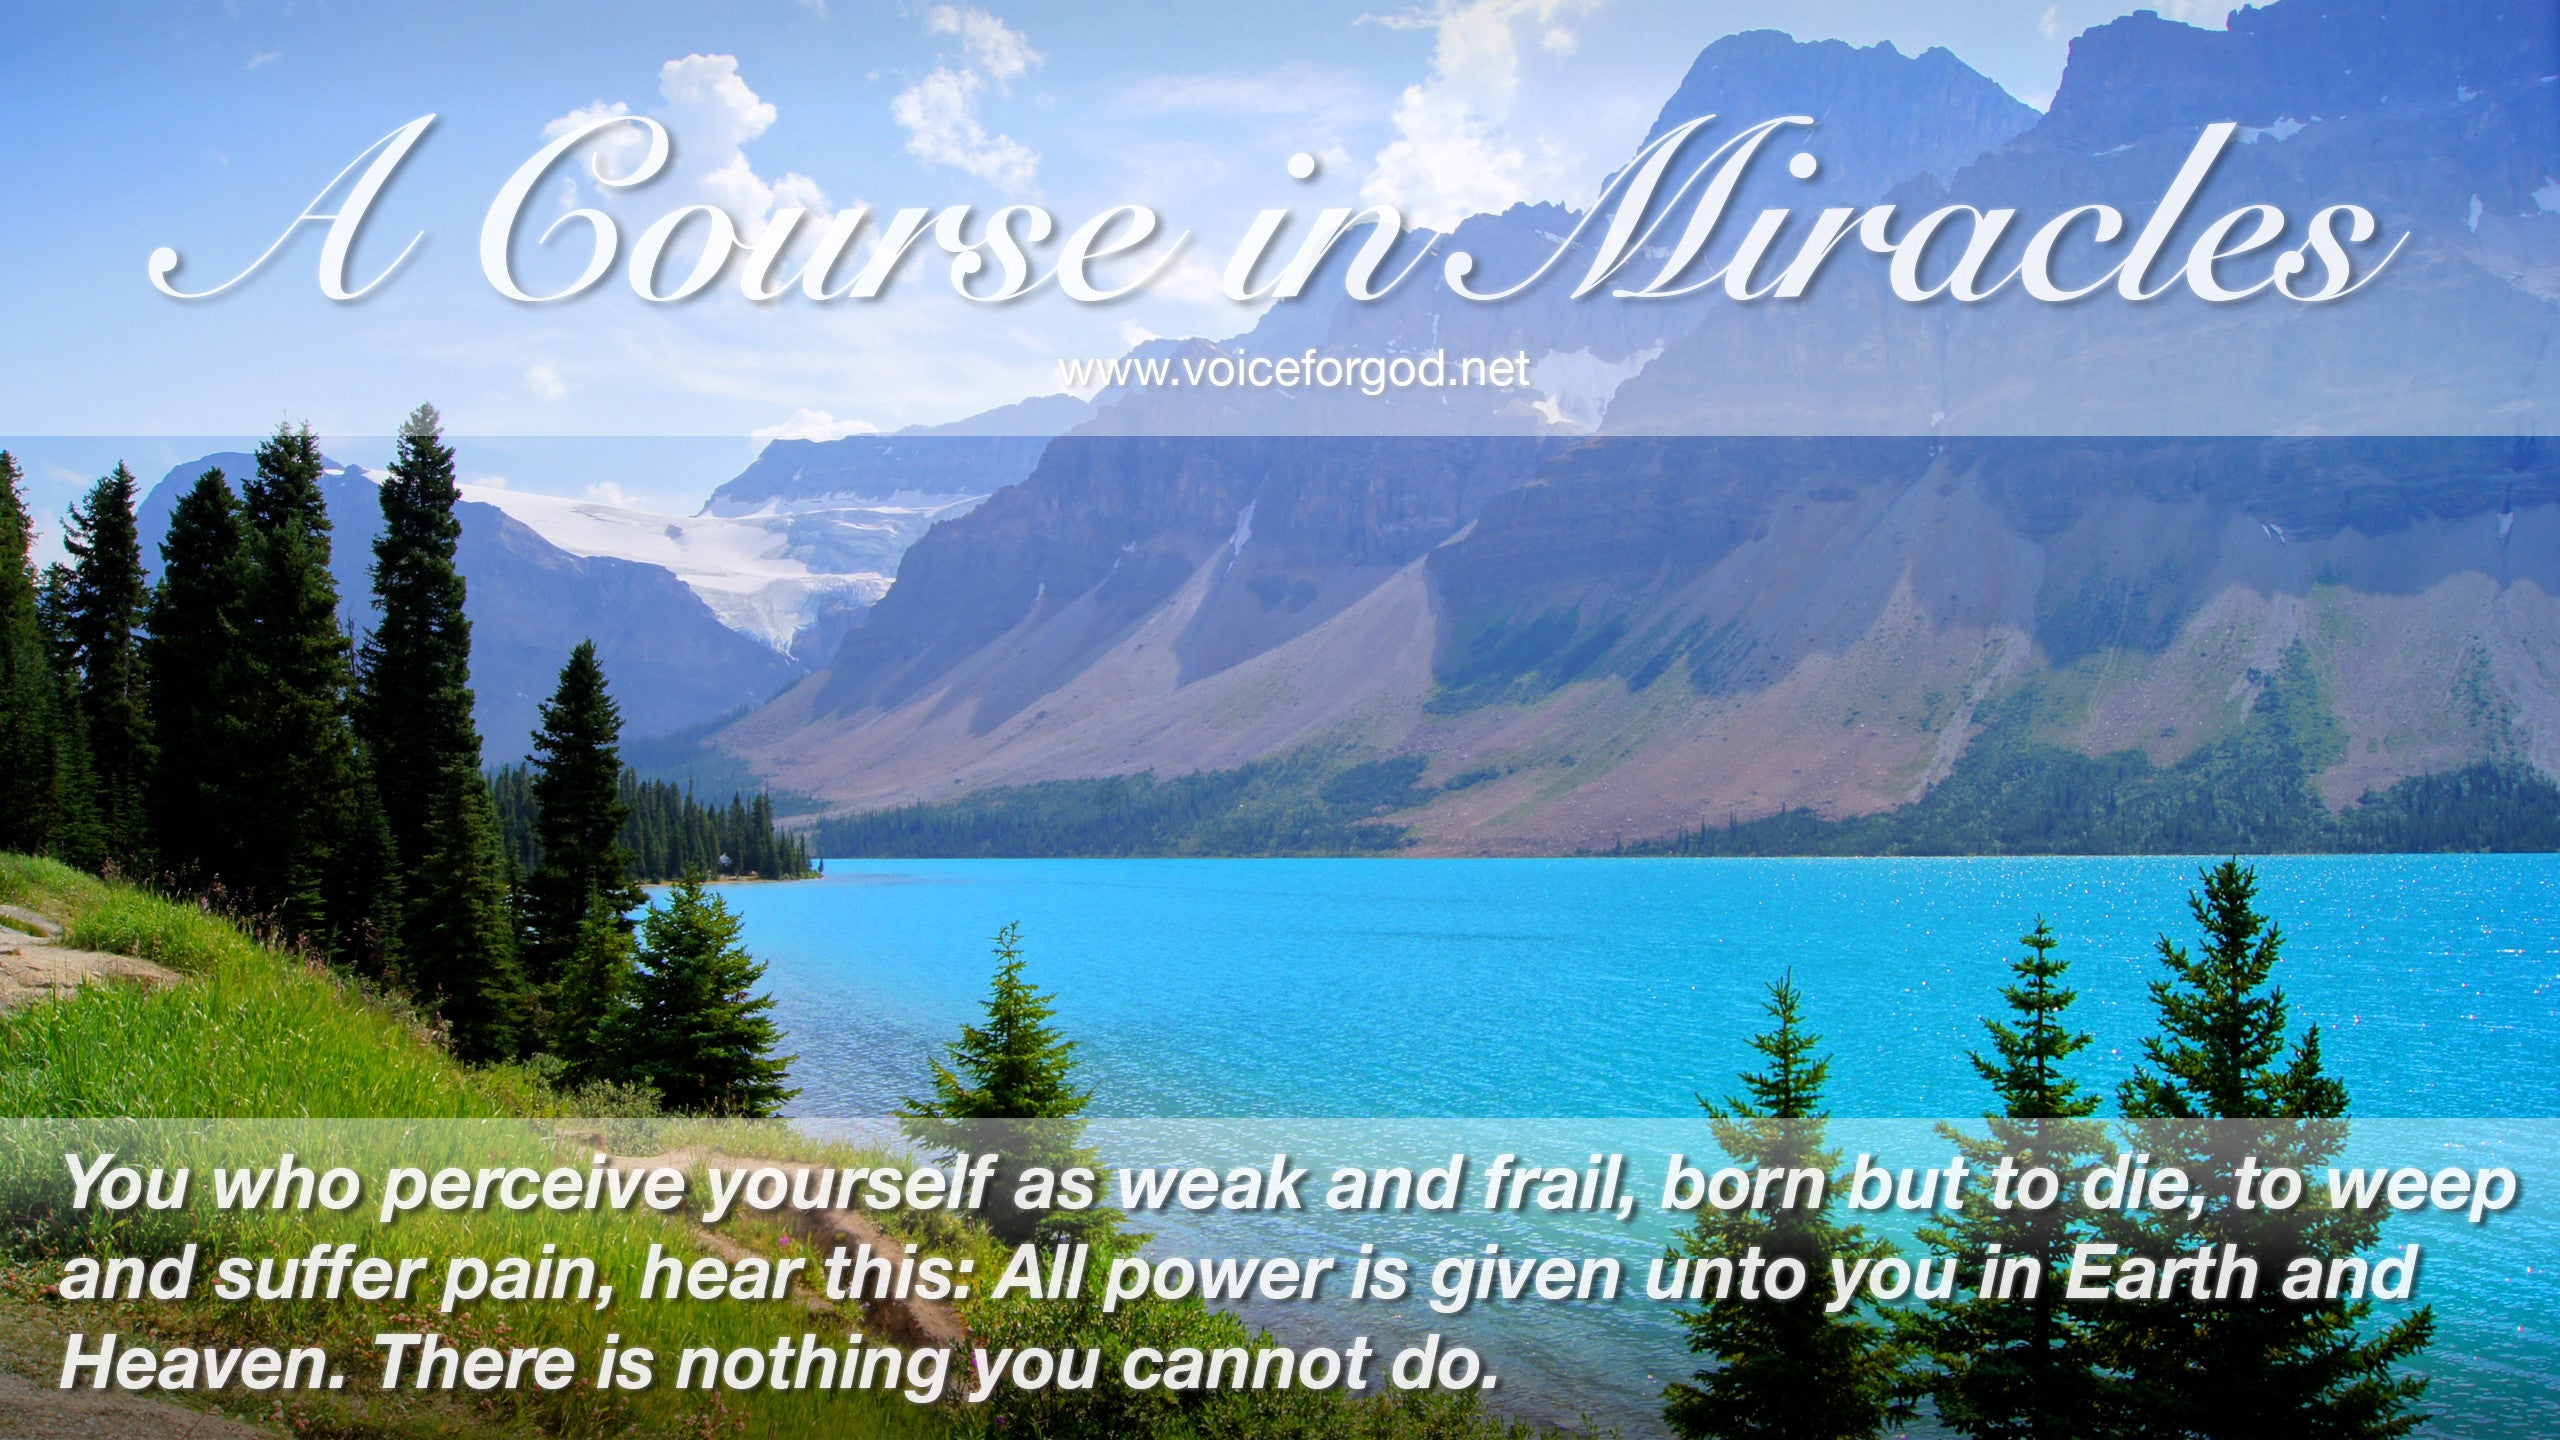 Acim Acim Quote 0909 A Course In Miracles Quotes Voice For God